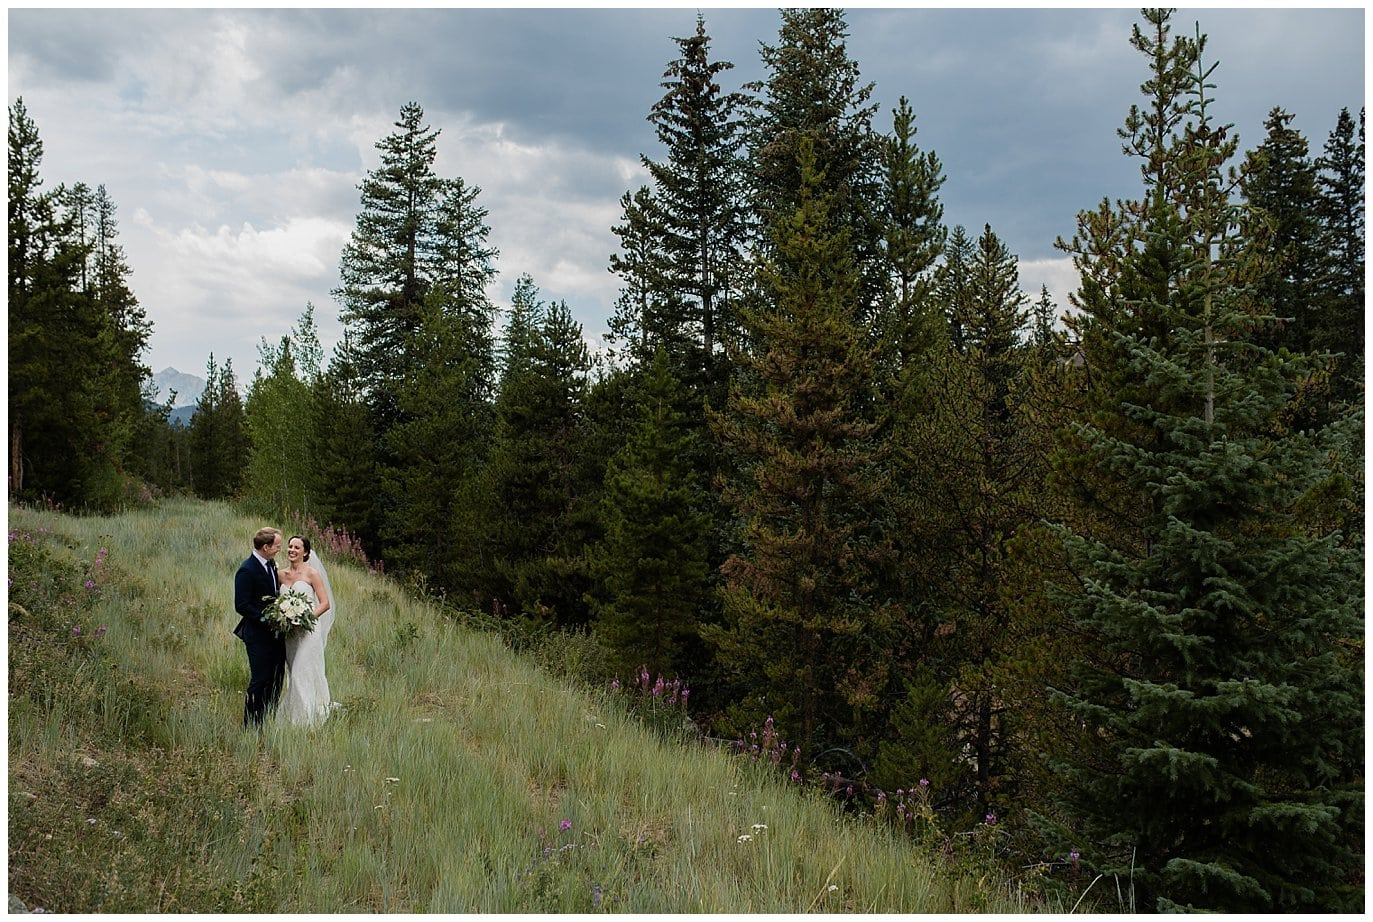 bride and groom in Colorado forest at Arapahoe Basin Black Mountain Lodge Wedding by Arapahoe Basin Wedding Photographer Jennie Crate